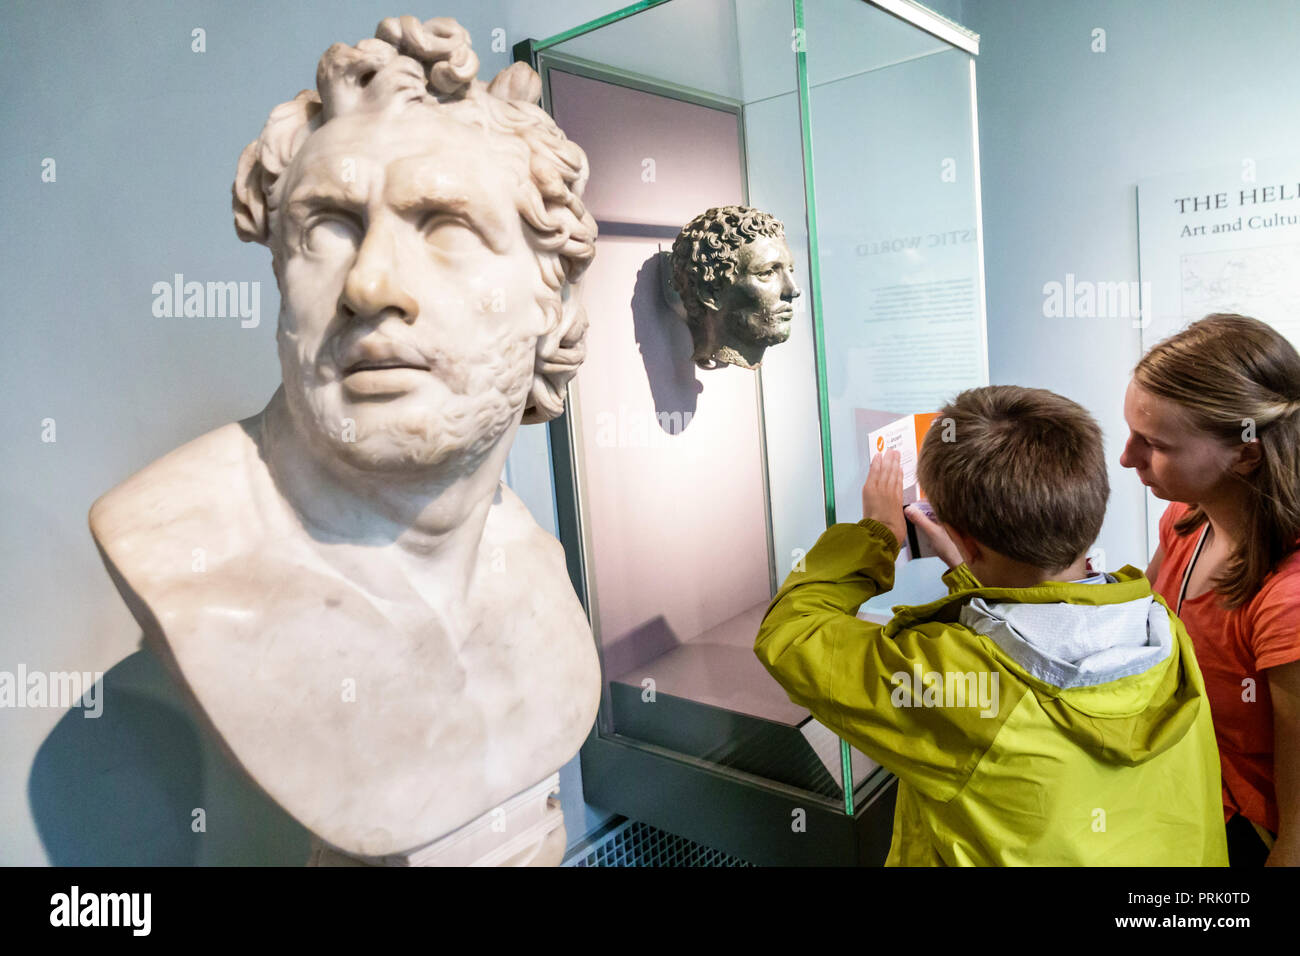 London England United Kingdom Great Britain Bloomsbury The British Museum human culture history interior gallery Roman marble head of Homeric hero Hel - Stock Image